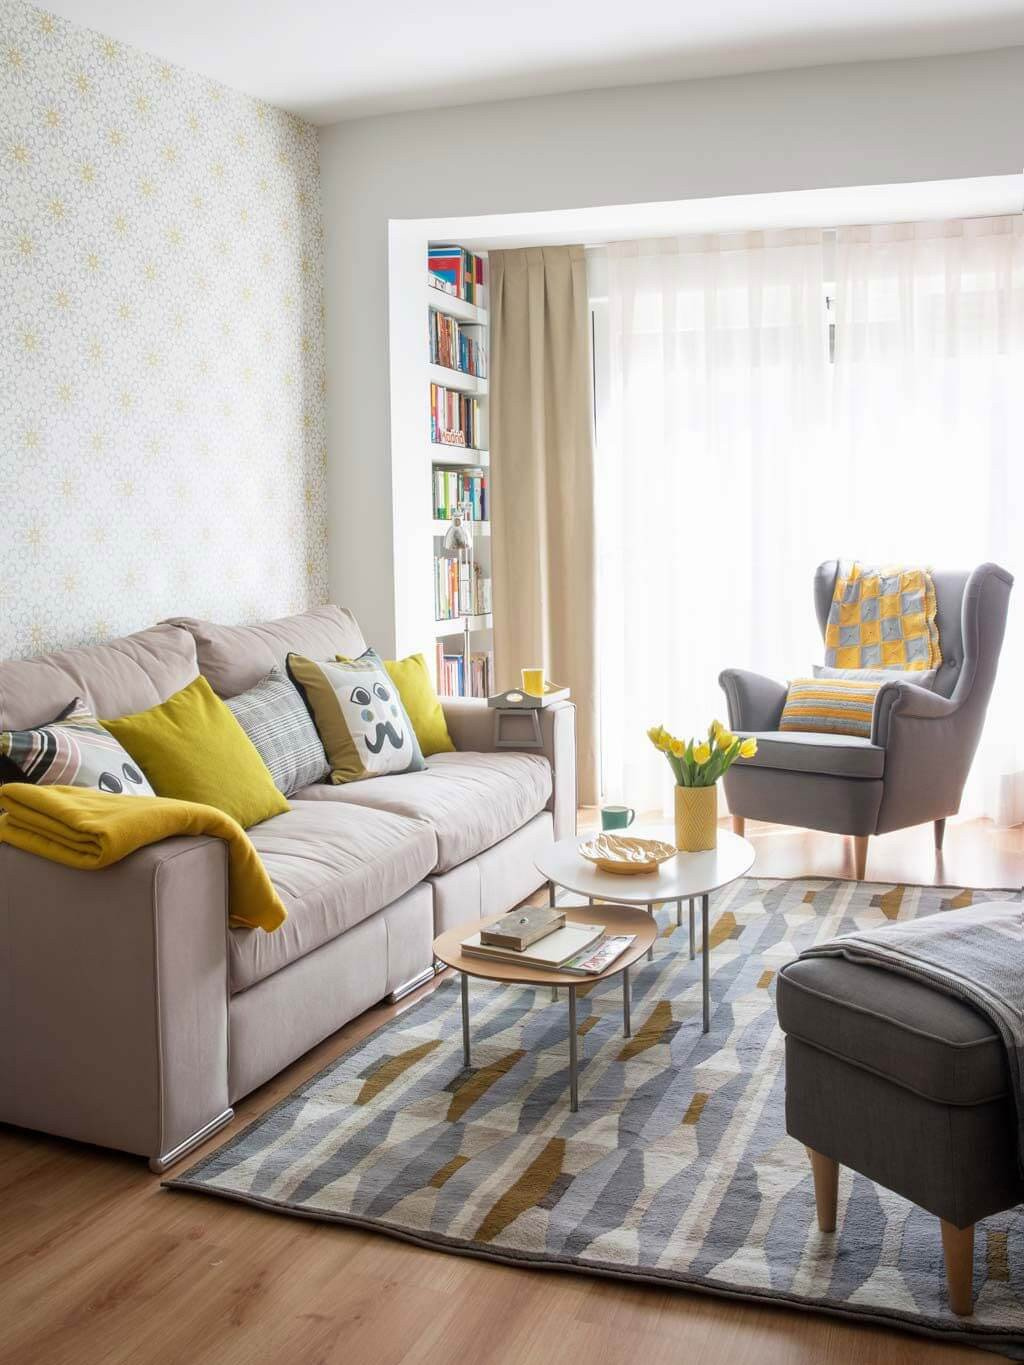 Small Living Room Decorating Ideas Unique 25 Best Small Living Room Decor and Design Ideas for 2019